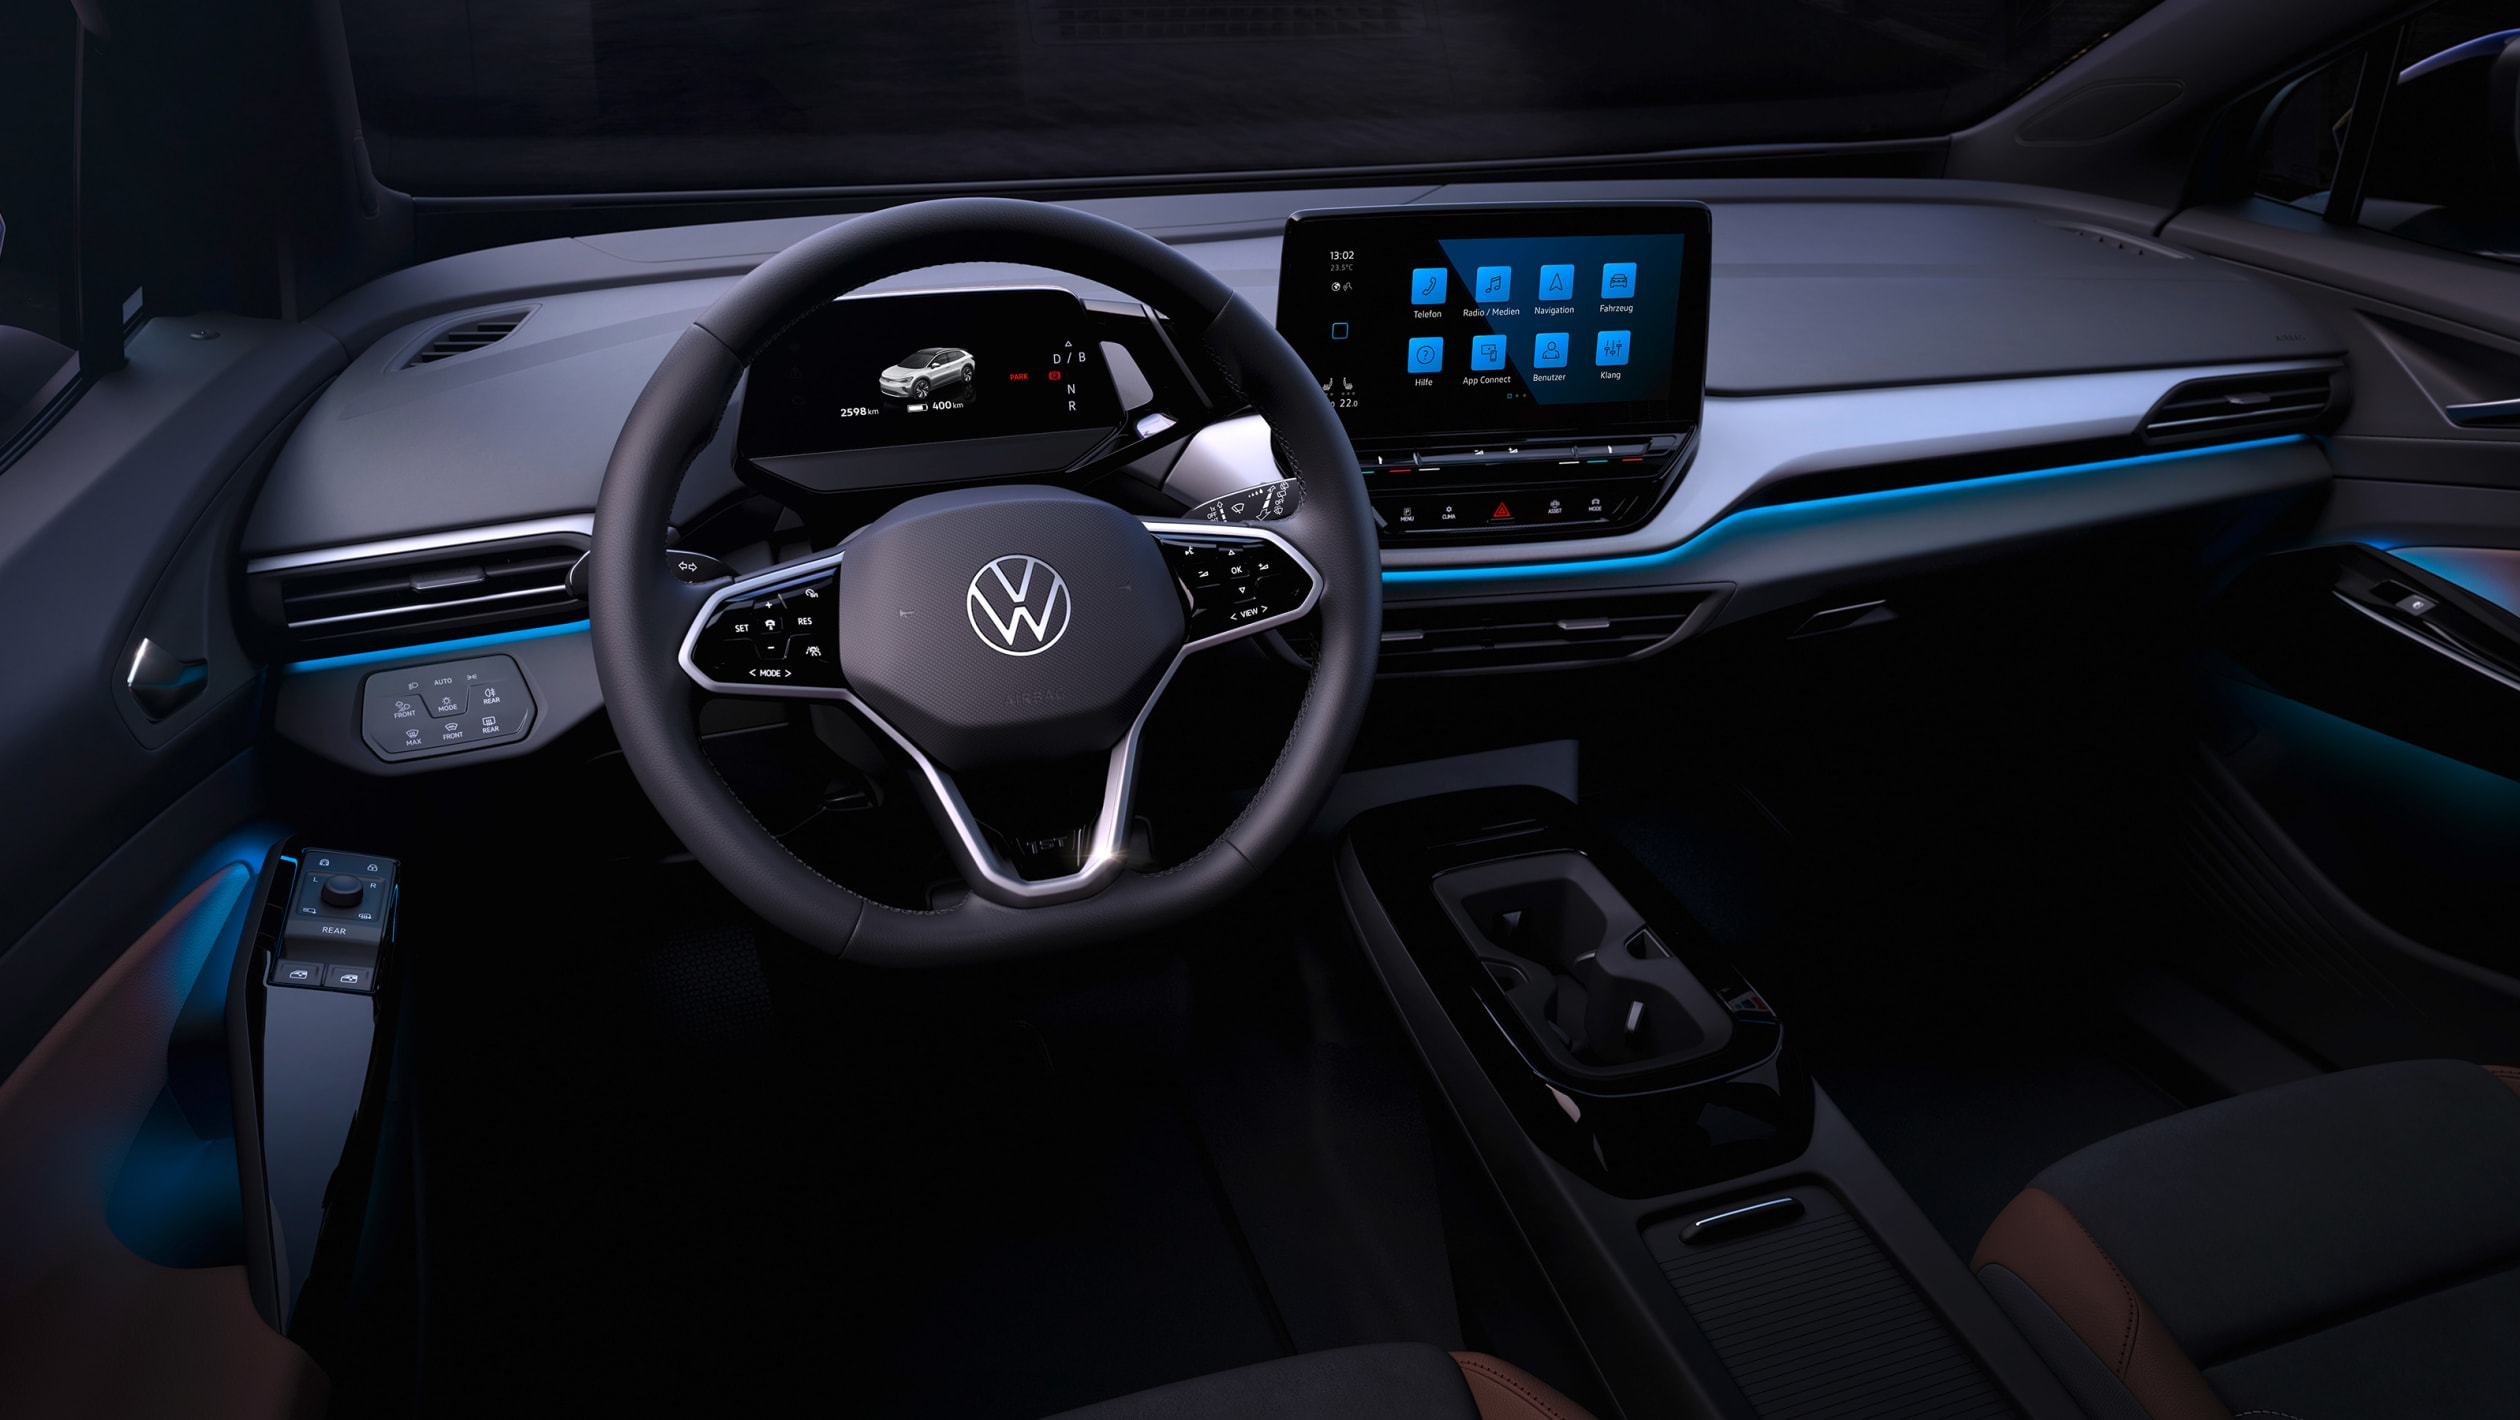 VW ID.4 interior teased